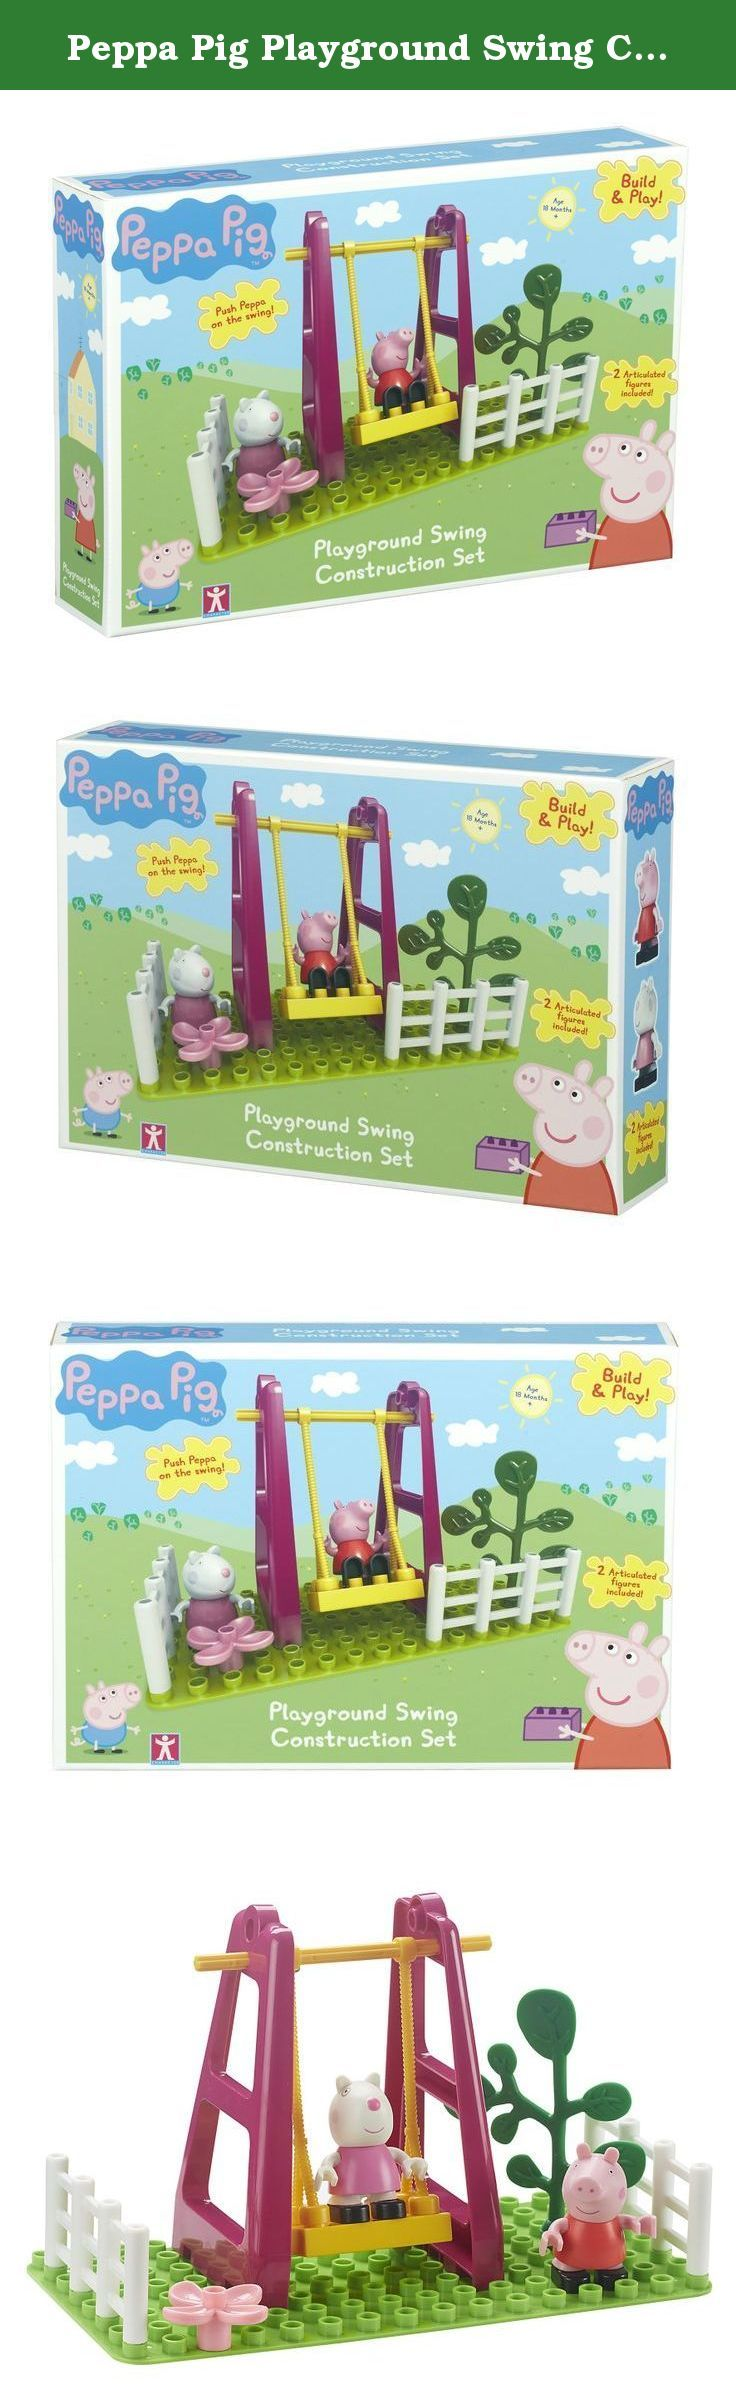 Peppa Pig Playground Swing Construction Set. Have fun building this large brick playground swing playset. Includes Peppa Pig and Suzy Sheep articulated figures that clip on to the set. Push them on the swing for playground fun! Encourages dexterity and coordination skills. Compatible with other Peppa Pig Construction playsets. .